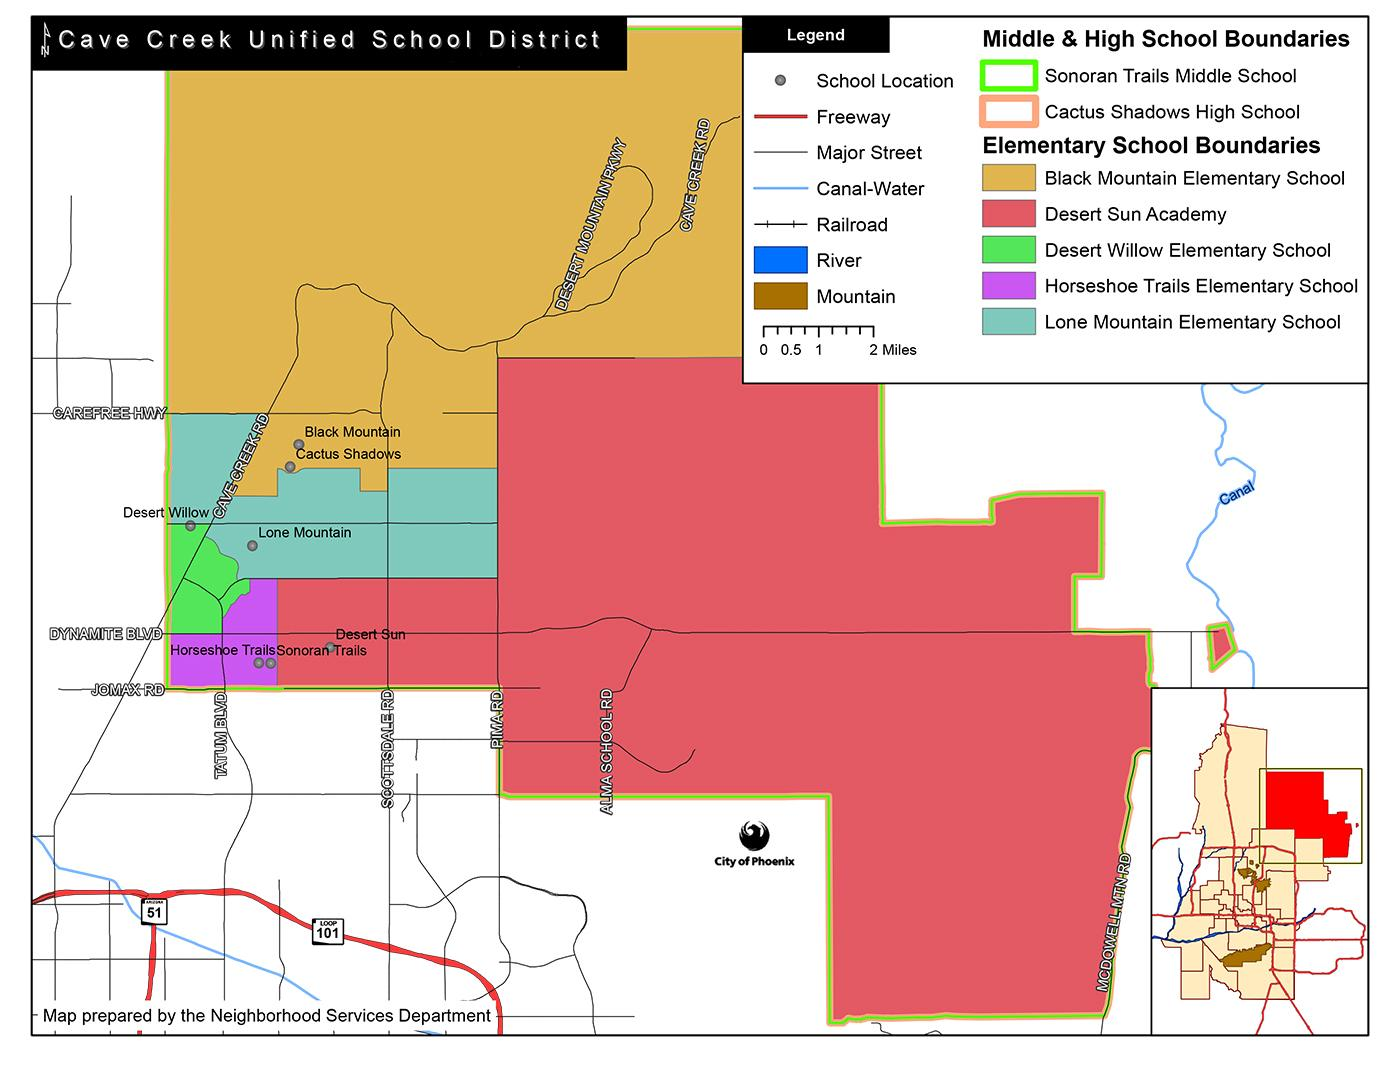 ccusd boundary map